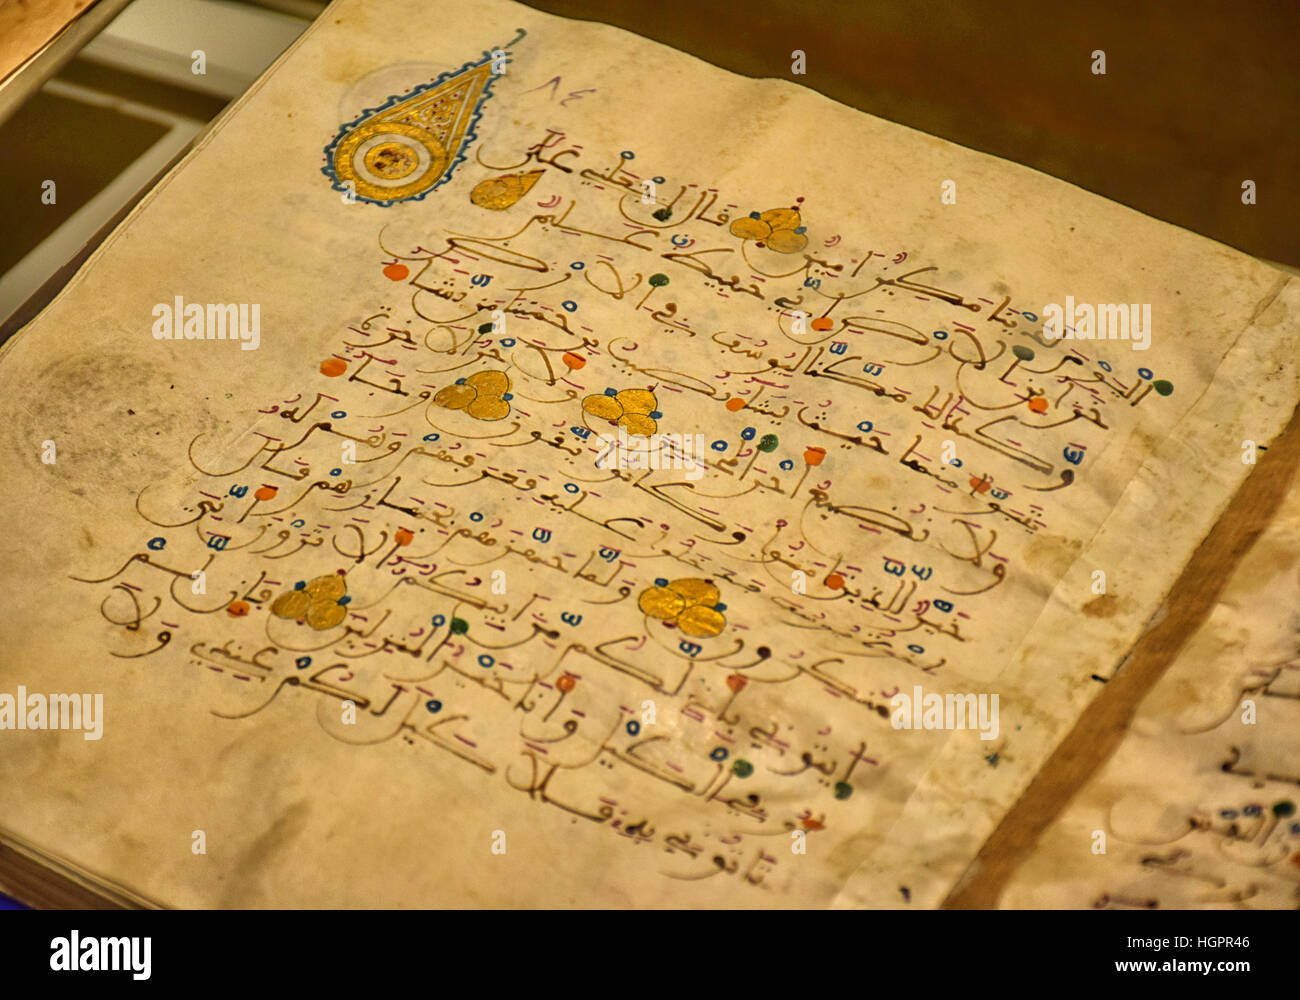 A rare manuscripts of Qur'an on display at The Holy Qur'an Exhibition, Medina, Saudi Arabia - Stock Image